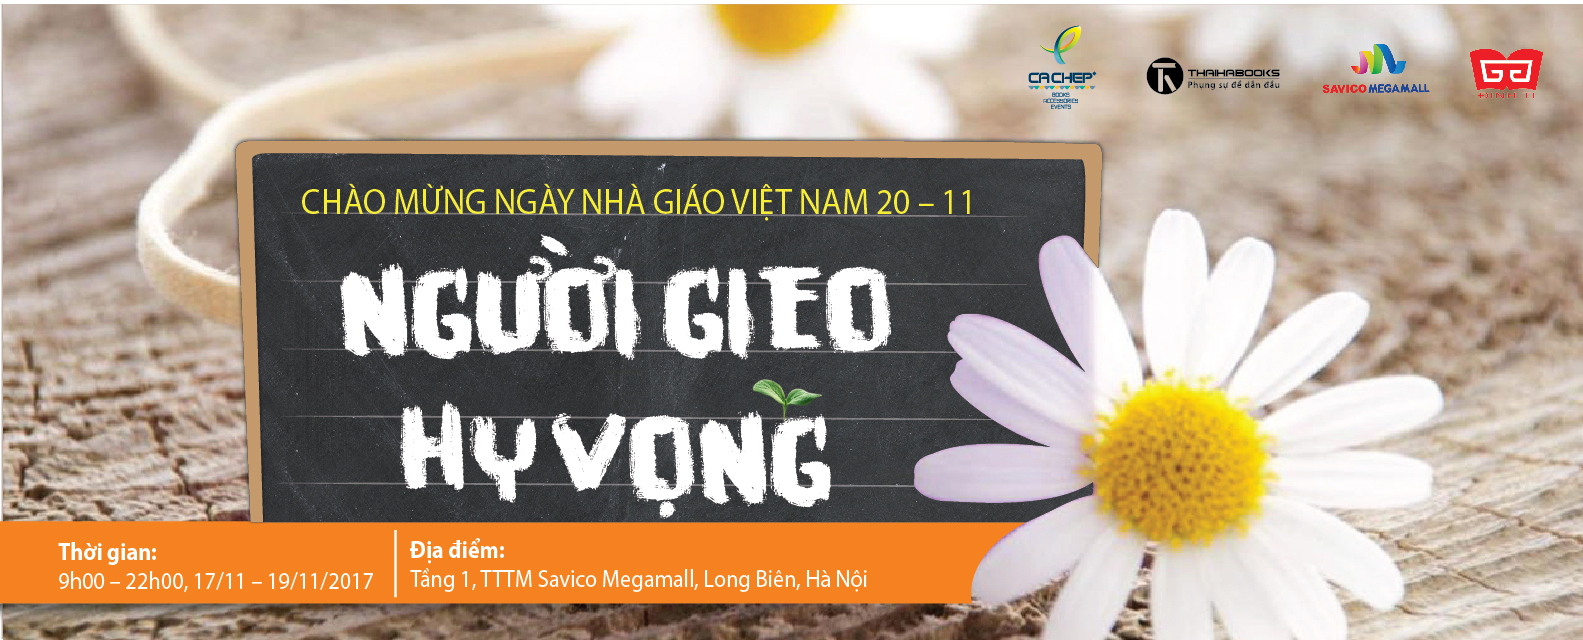 Banner_Nguoi gieo hy vong-02